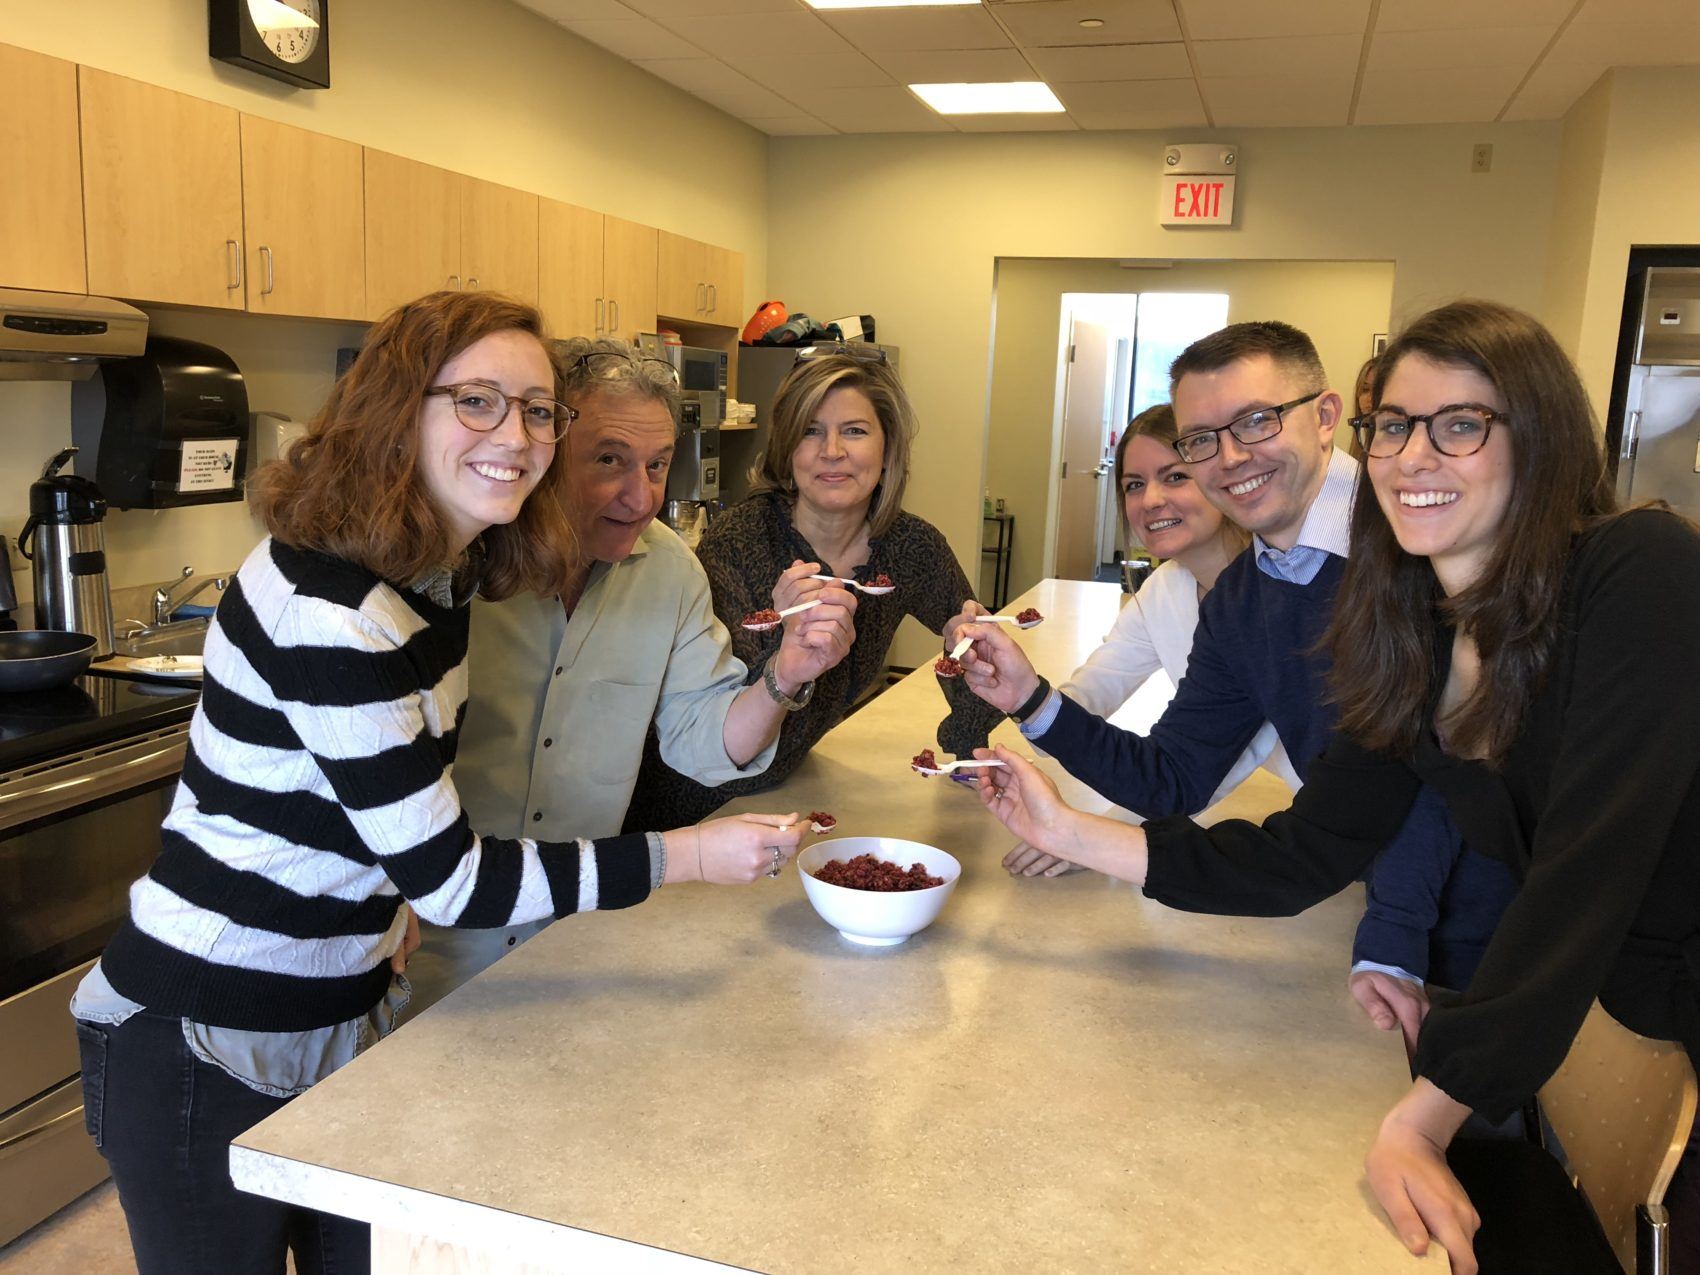 The On Point team enjoys some cranberry-pomegranate relish made by producer Stef Kotsonis (second from left). (Alex Schroeder/On Point)